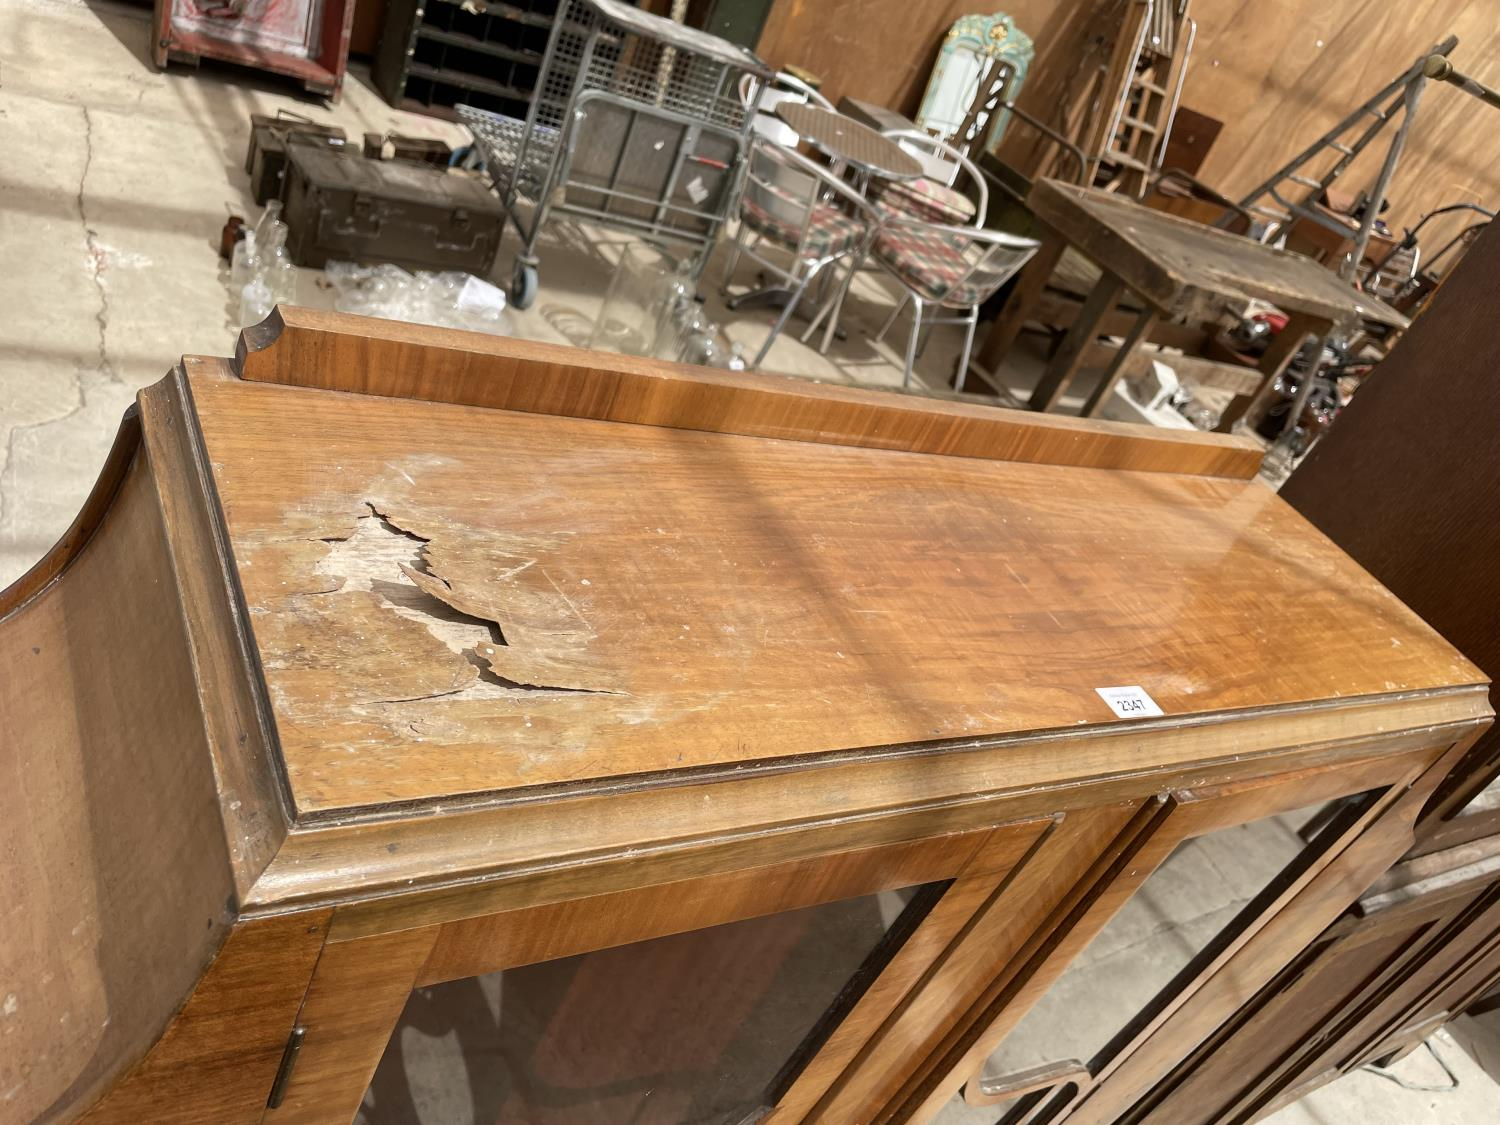 A WALNUT ART DECO STYLE CABINET WITH TWO GLAZED DOORS (AF TO TOP AND ONE PAIN REQUIRES REPLACING) - Image 2 of 7